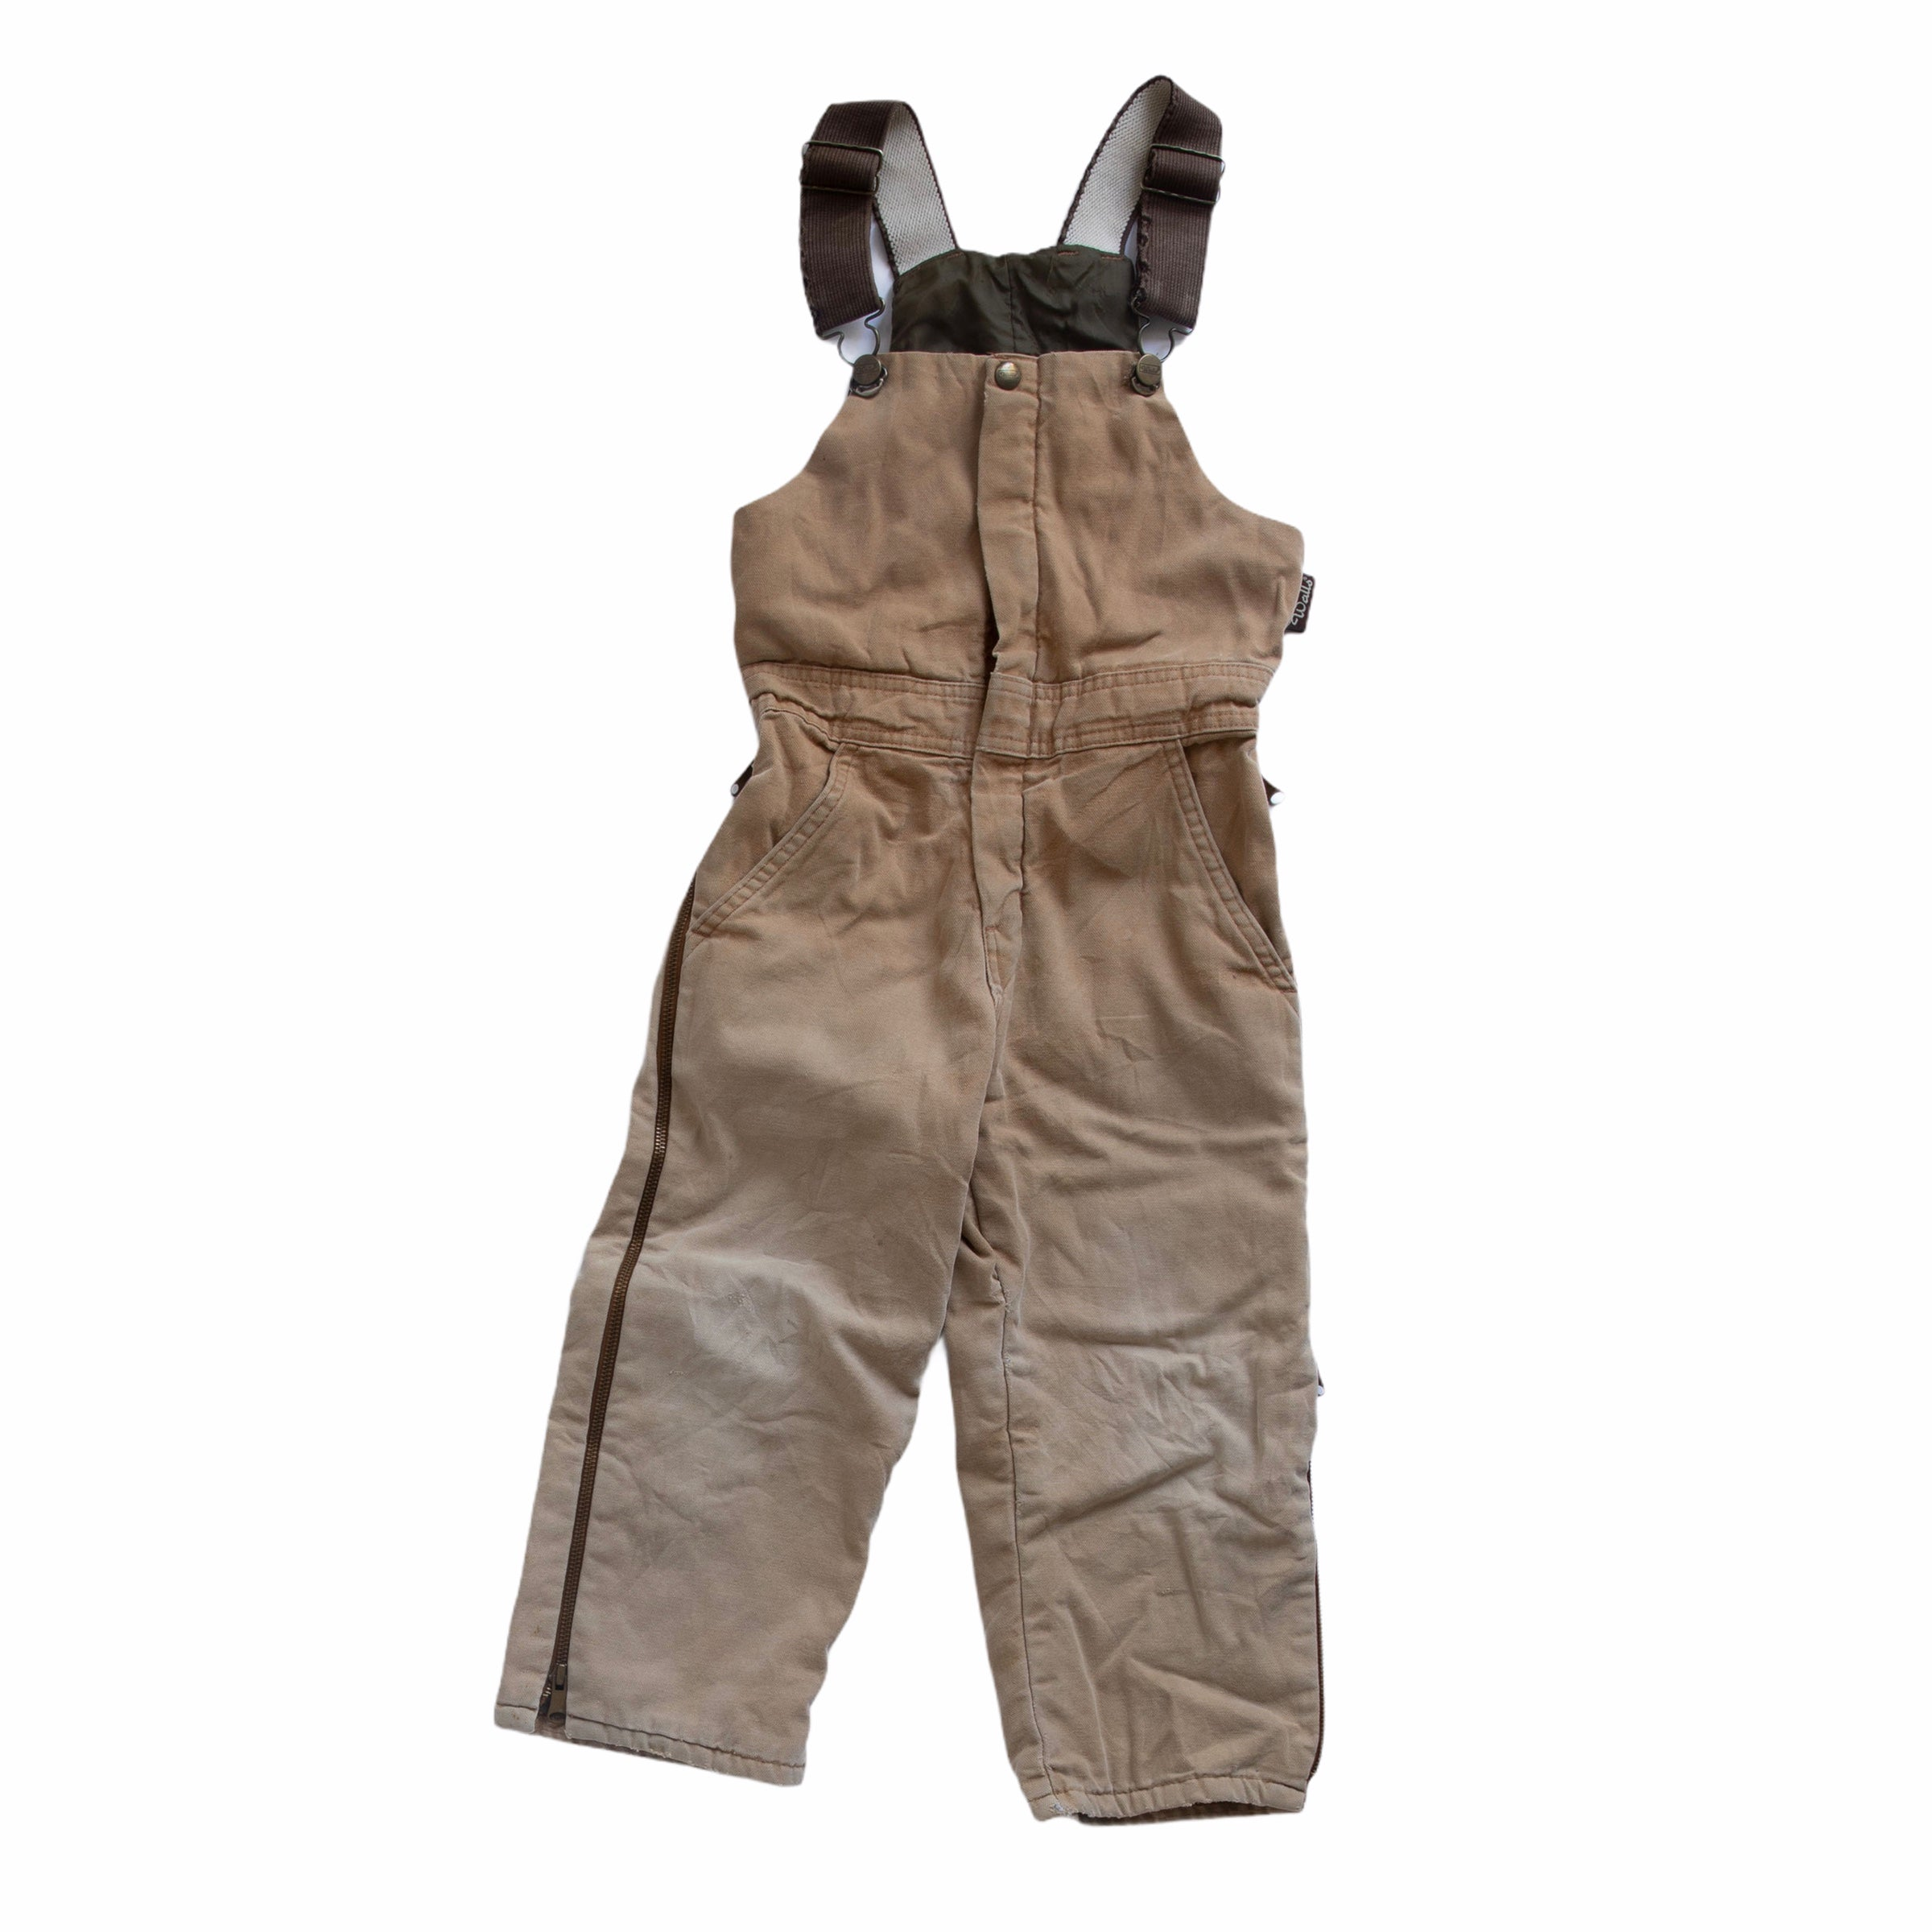 Vintage Walls Lined Child's Overalls